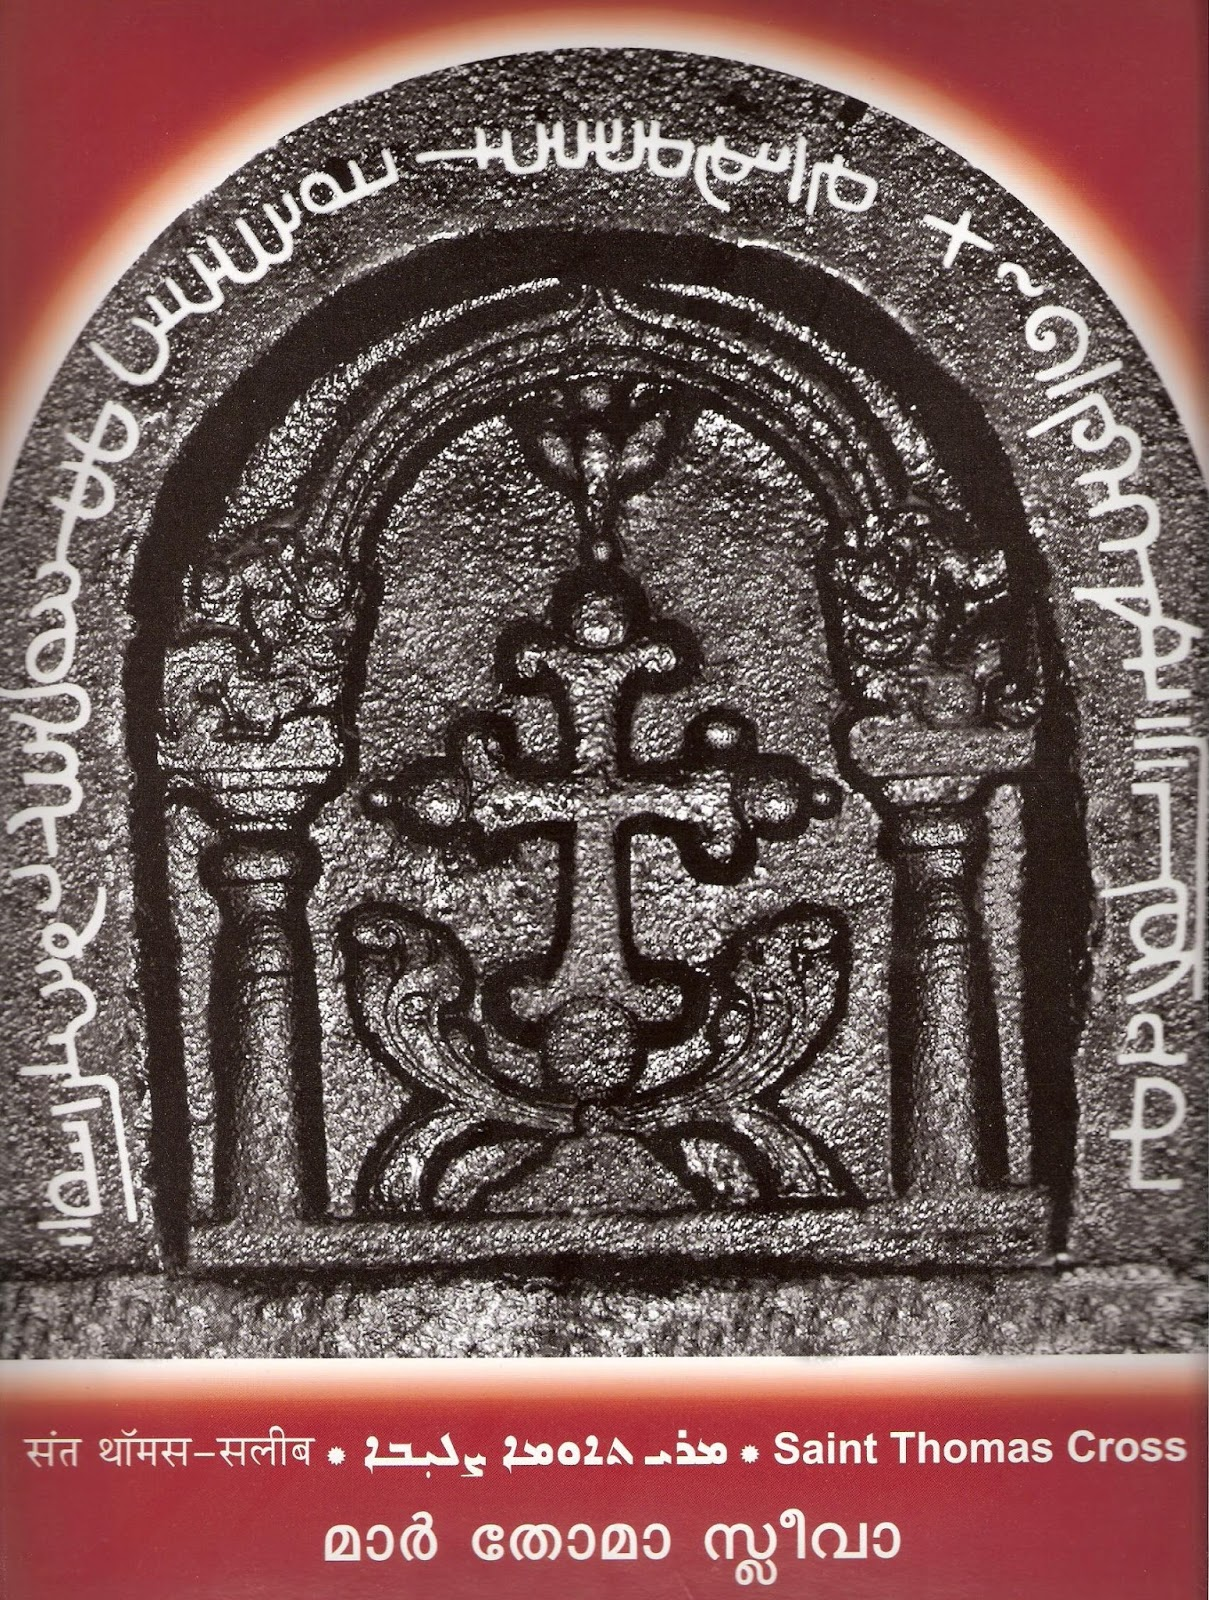 The syro malabar nazrani st thomas cross the cross of st thomas st thomas cross is the common name for the decorated crosses which were used by the st thomas christian community in india dhlflorist Choice Image